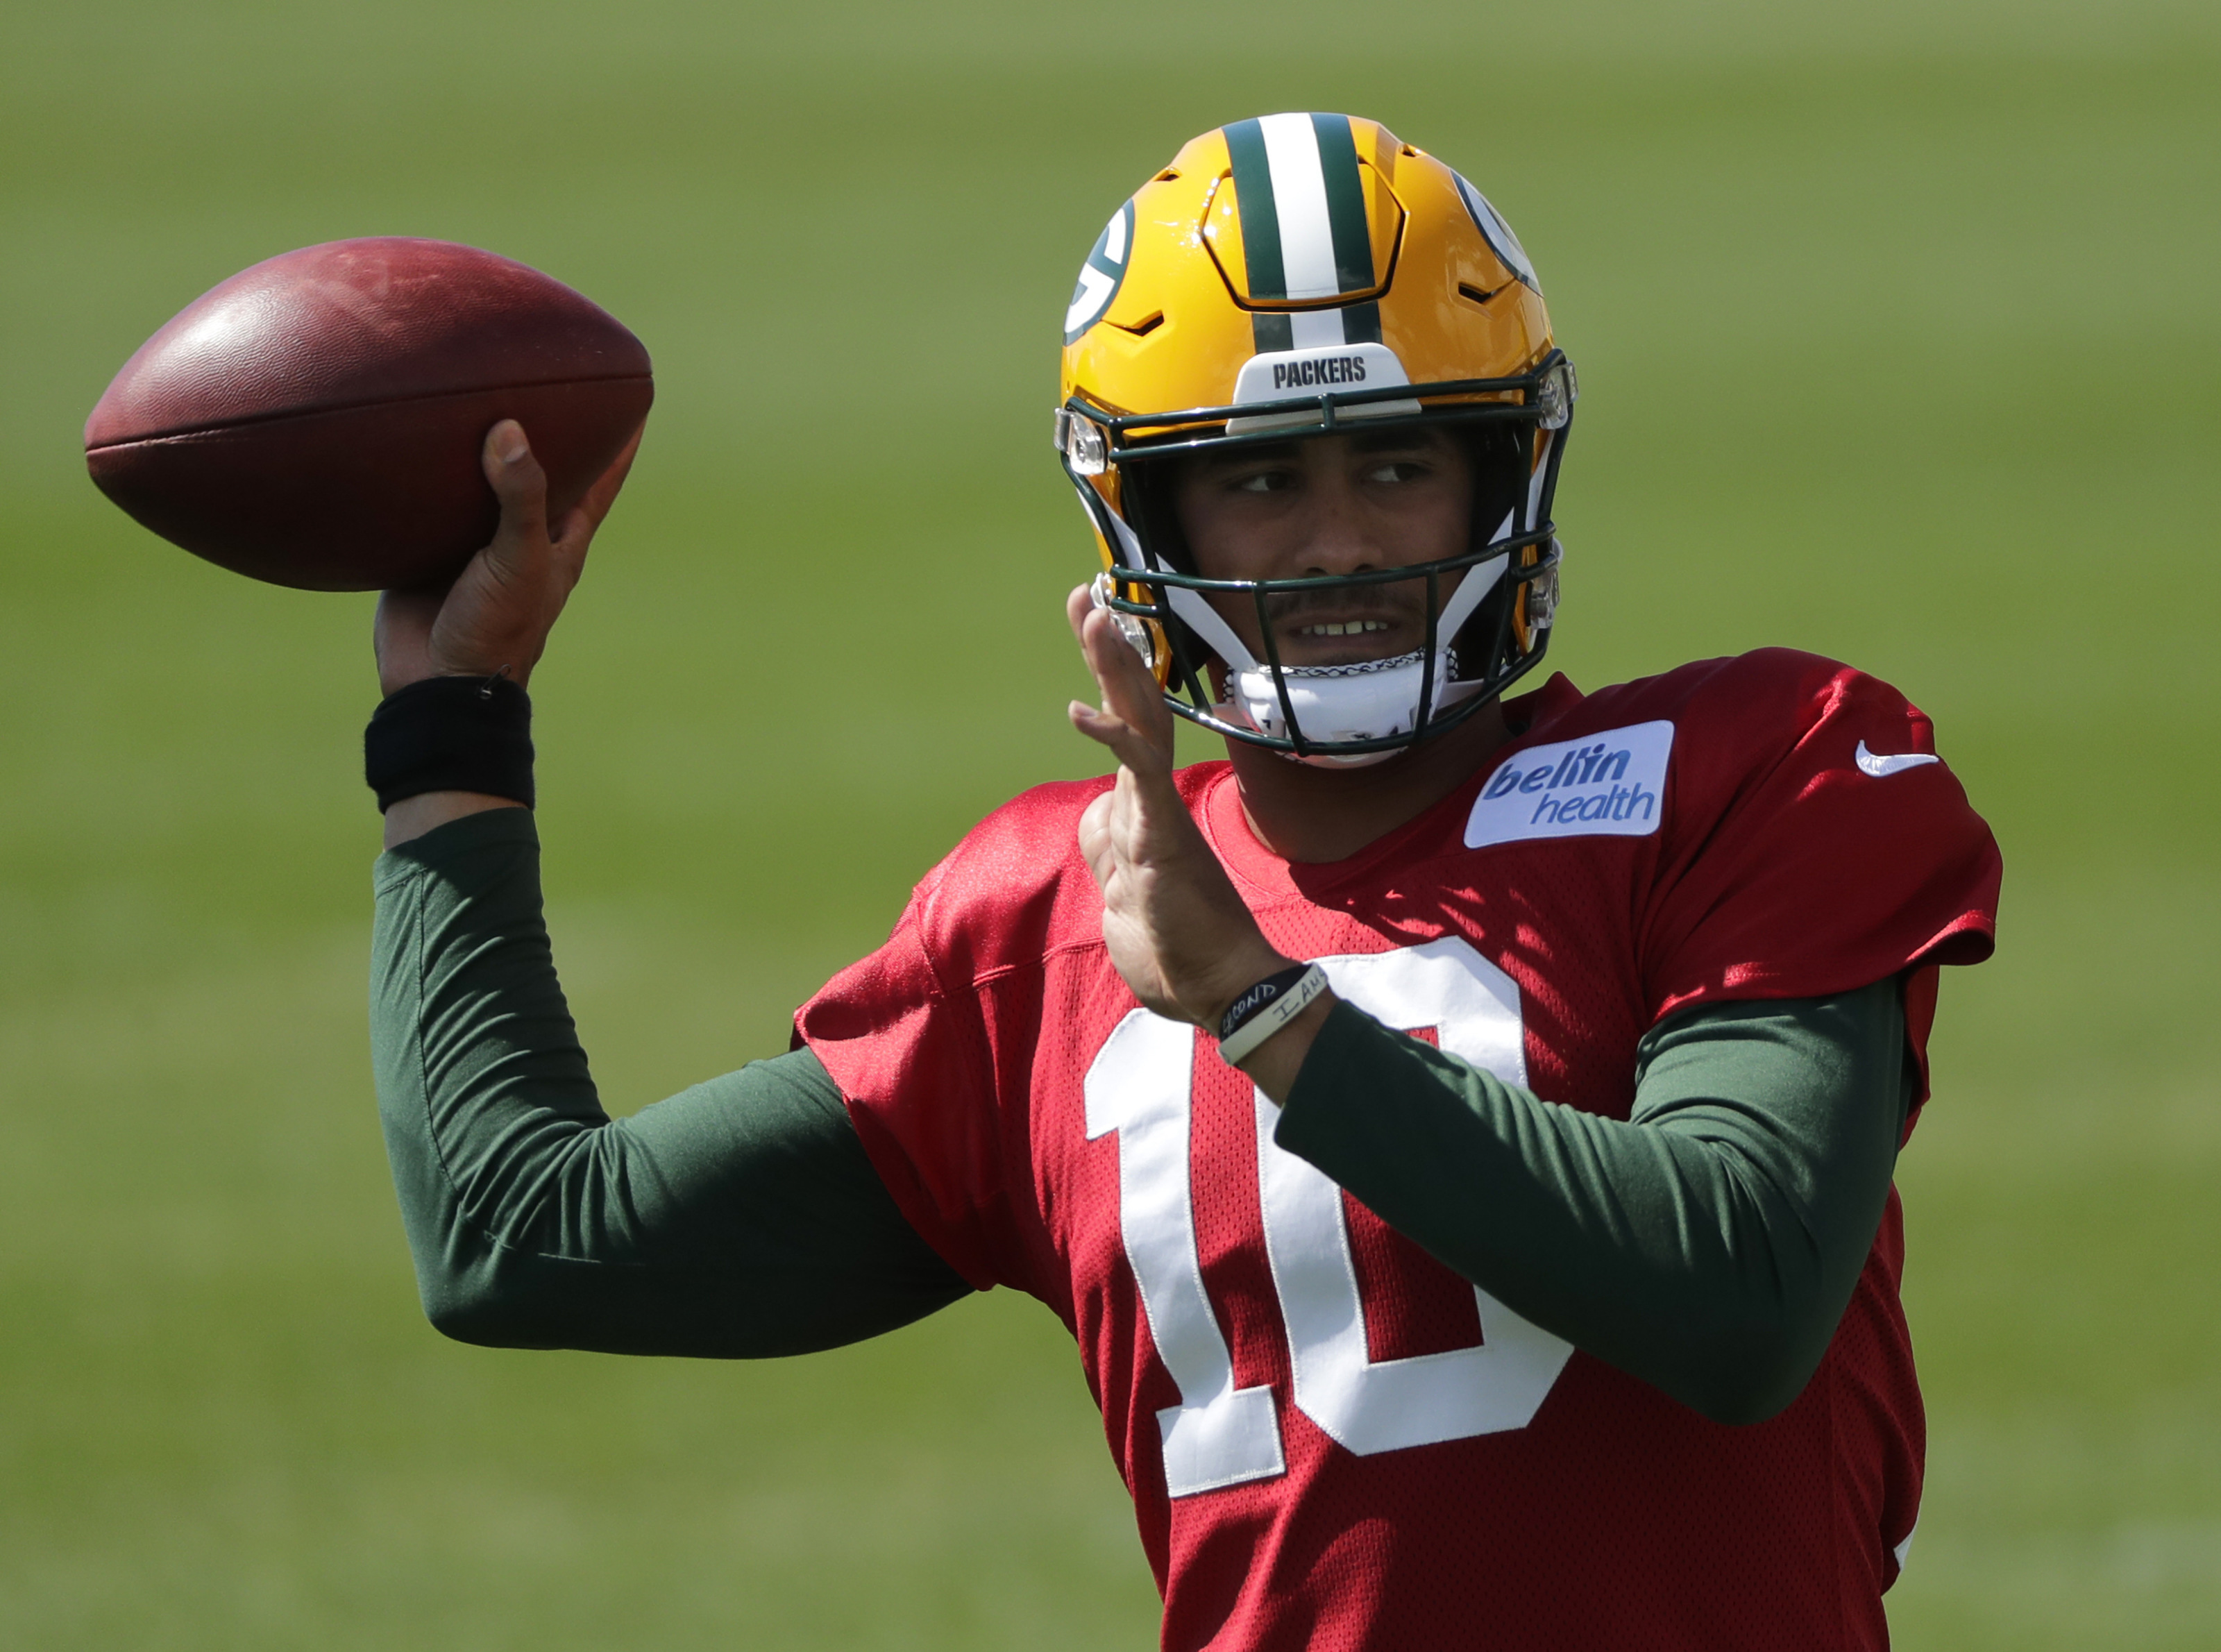 Packers: Should Jordan Love be a trade candidate during the draft?